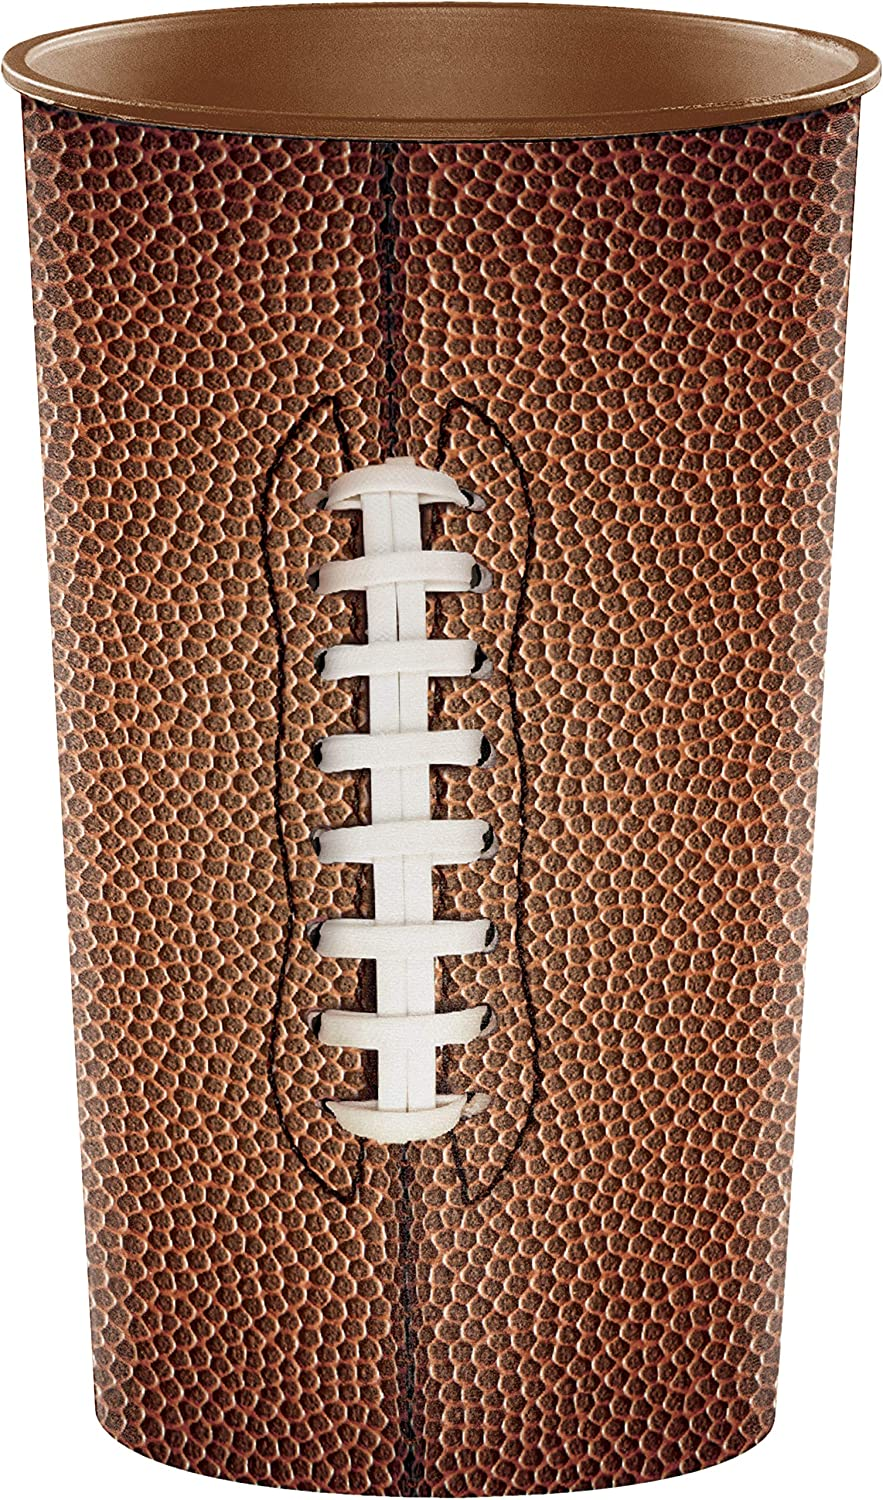 Creative Converting New Time sale products world's highest quality popular 20-Count Plastic Cups Football 22-Ounce